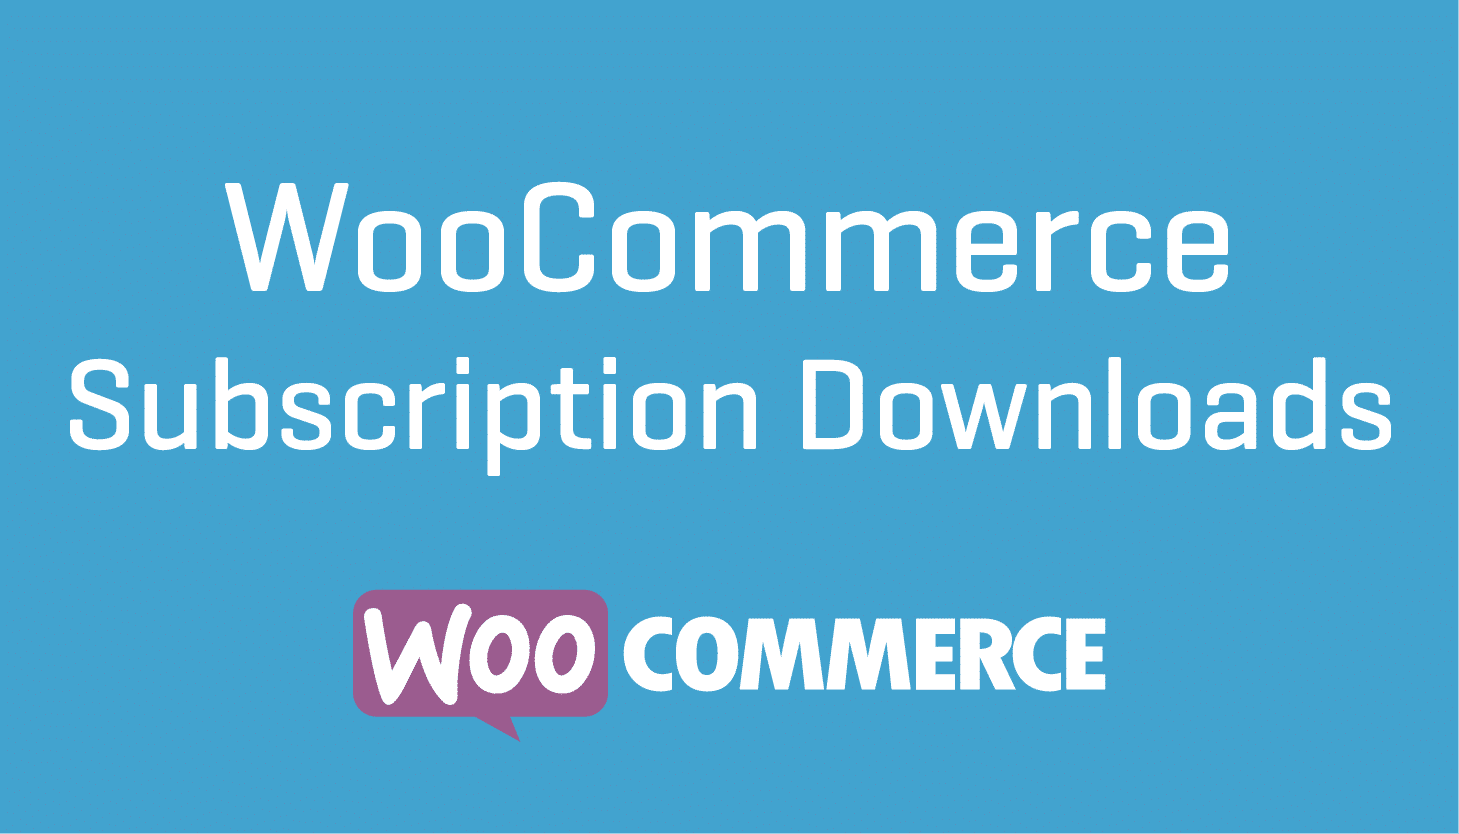 WooCommerce Subscription Downloads-01